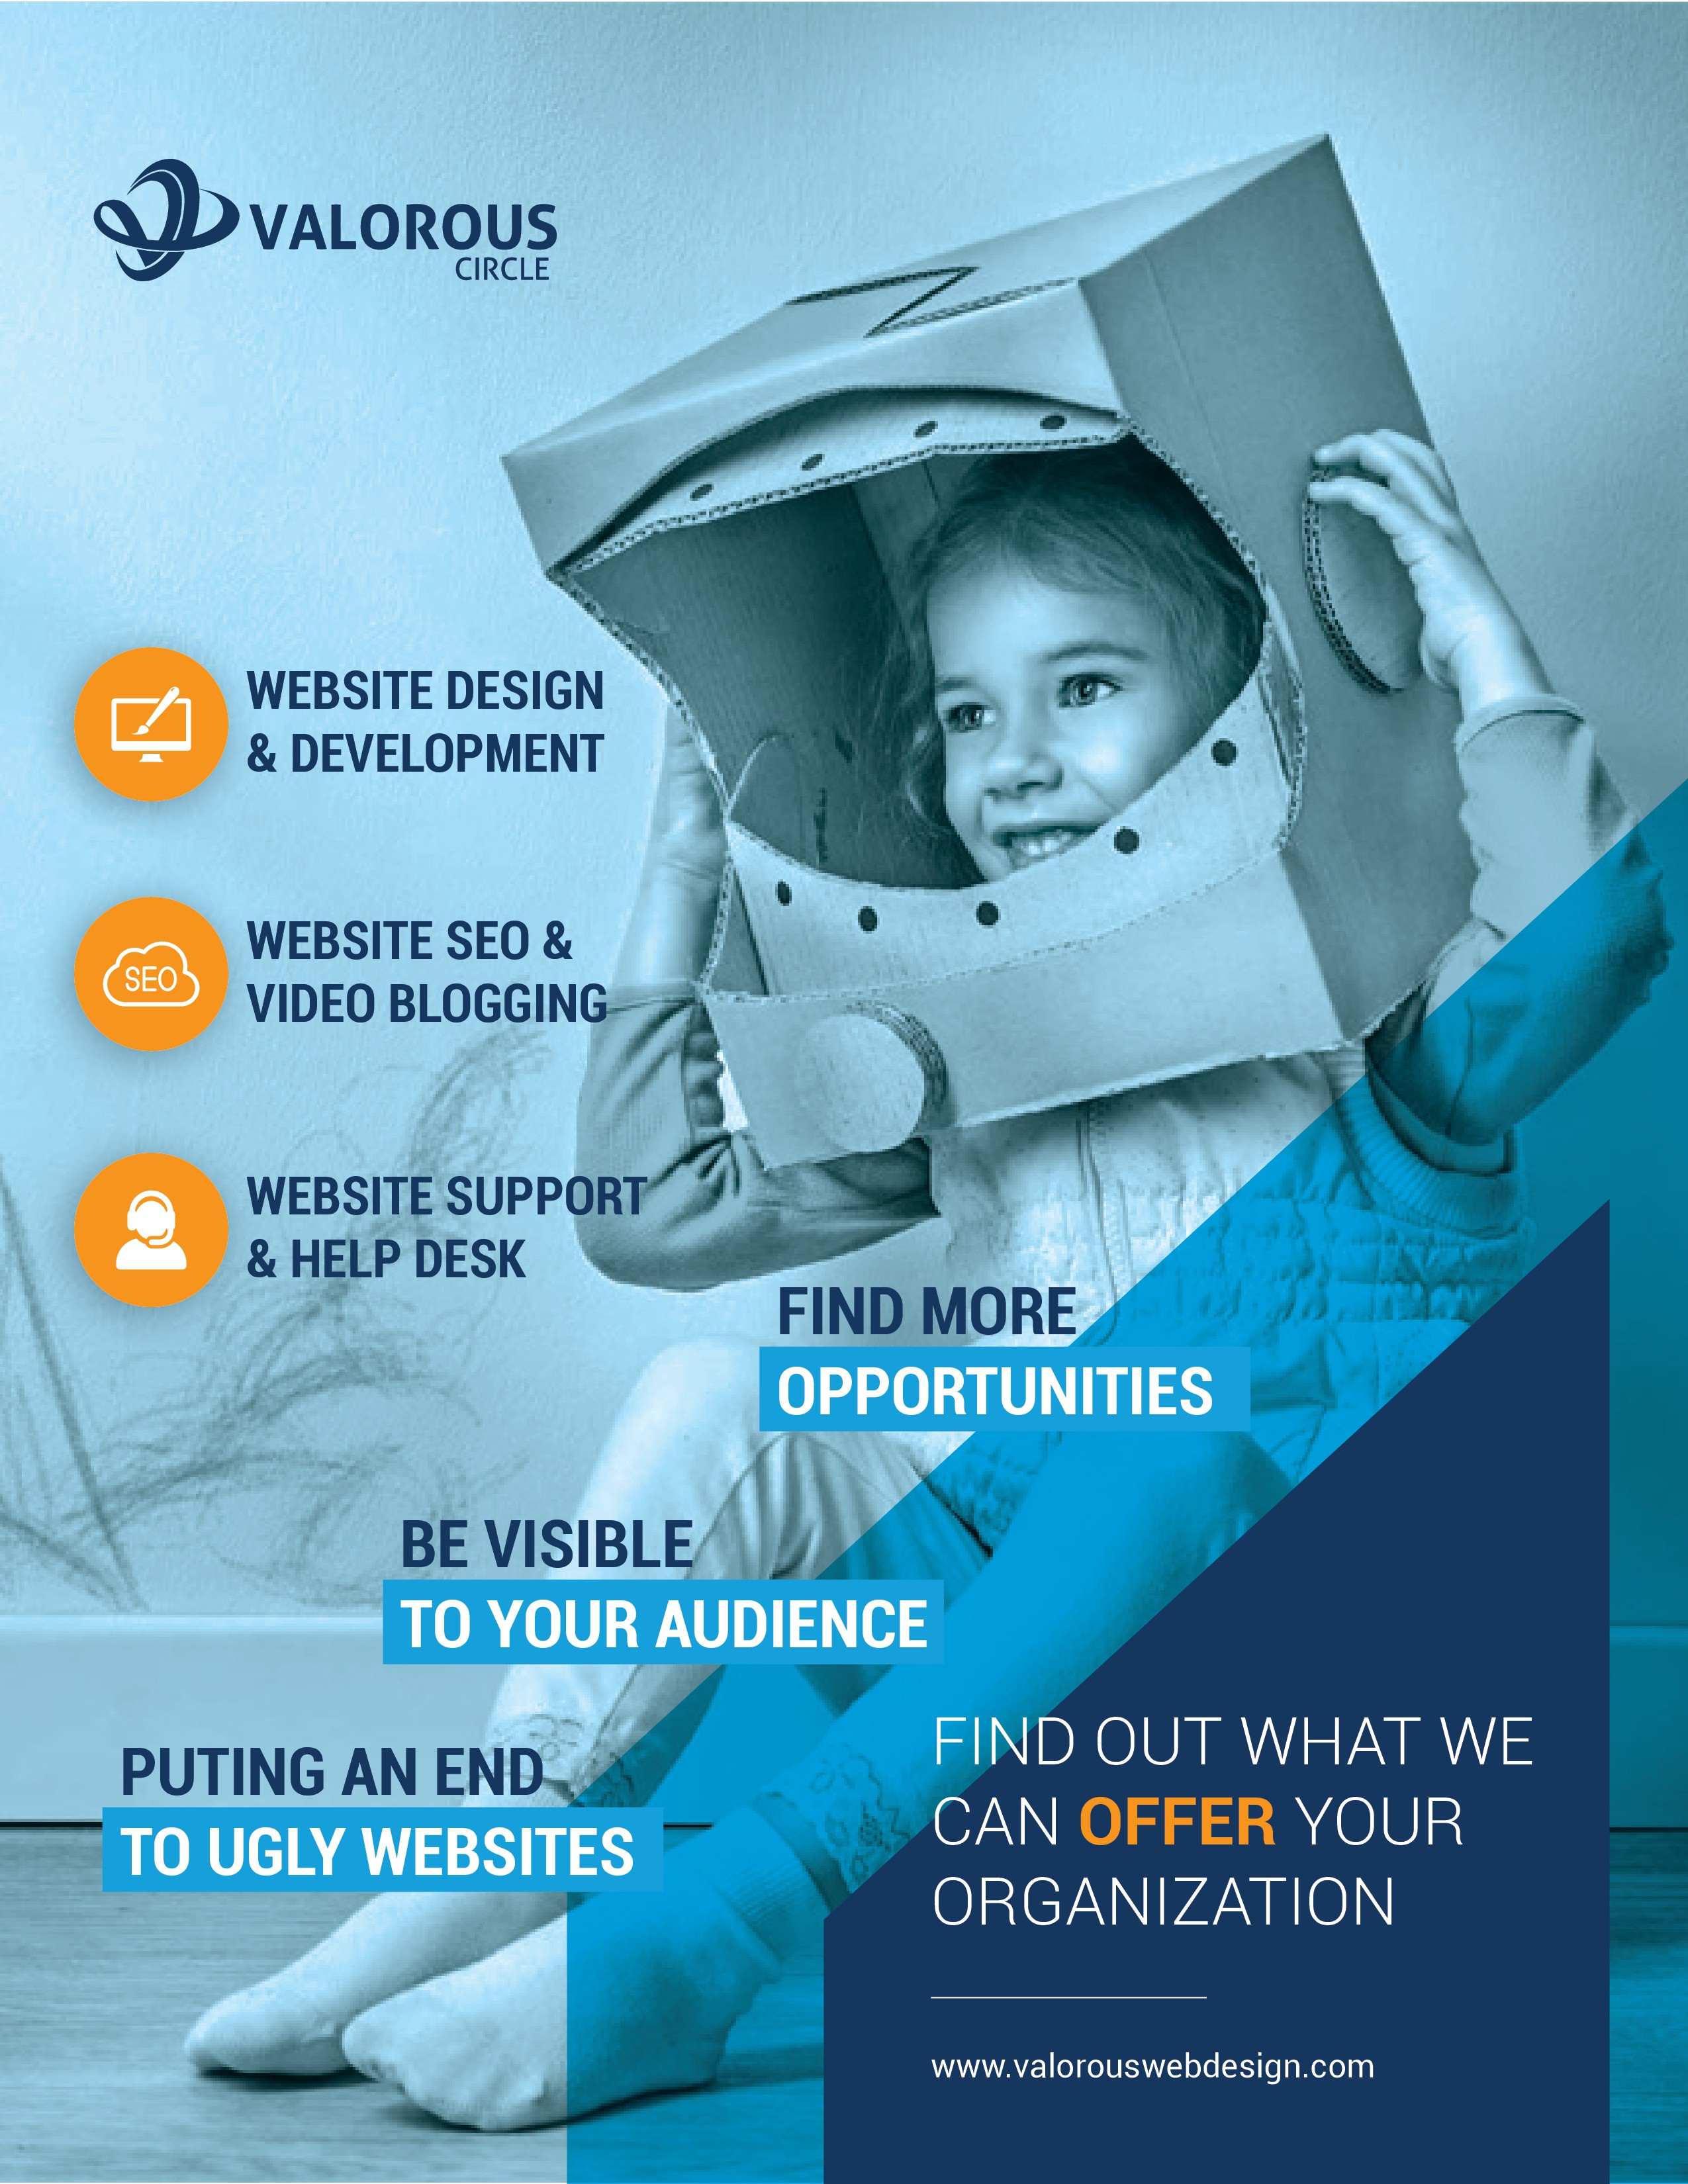 Design a compelling Marketing Flyer/Leave Behind for Web Design and SEO Firm